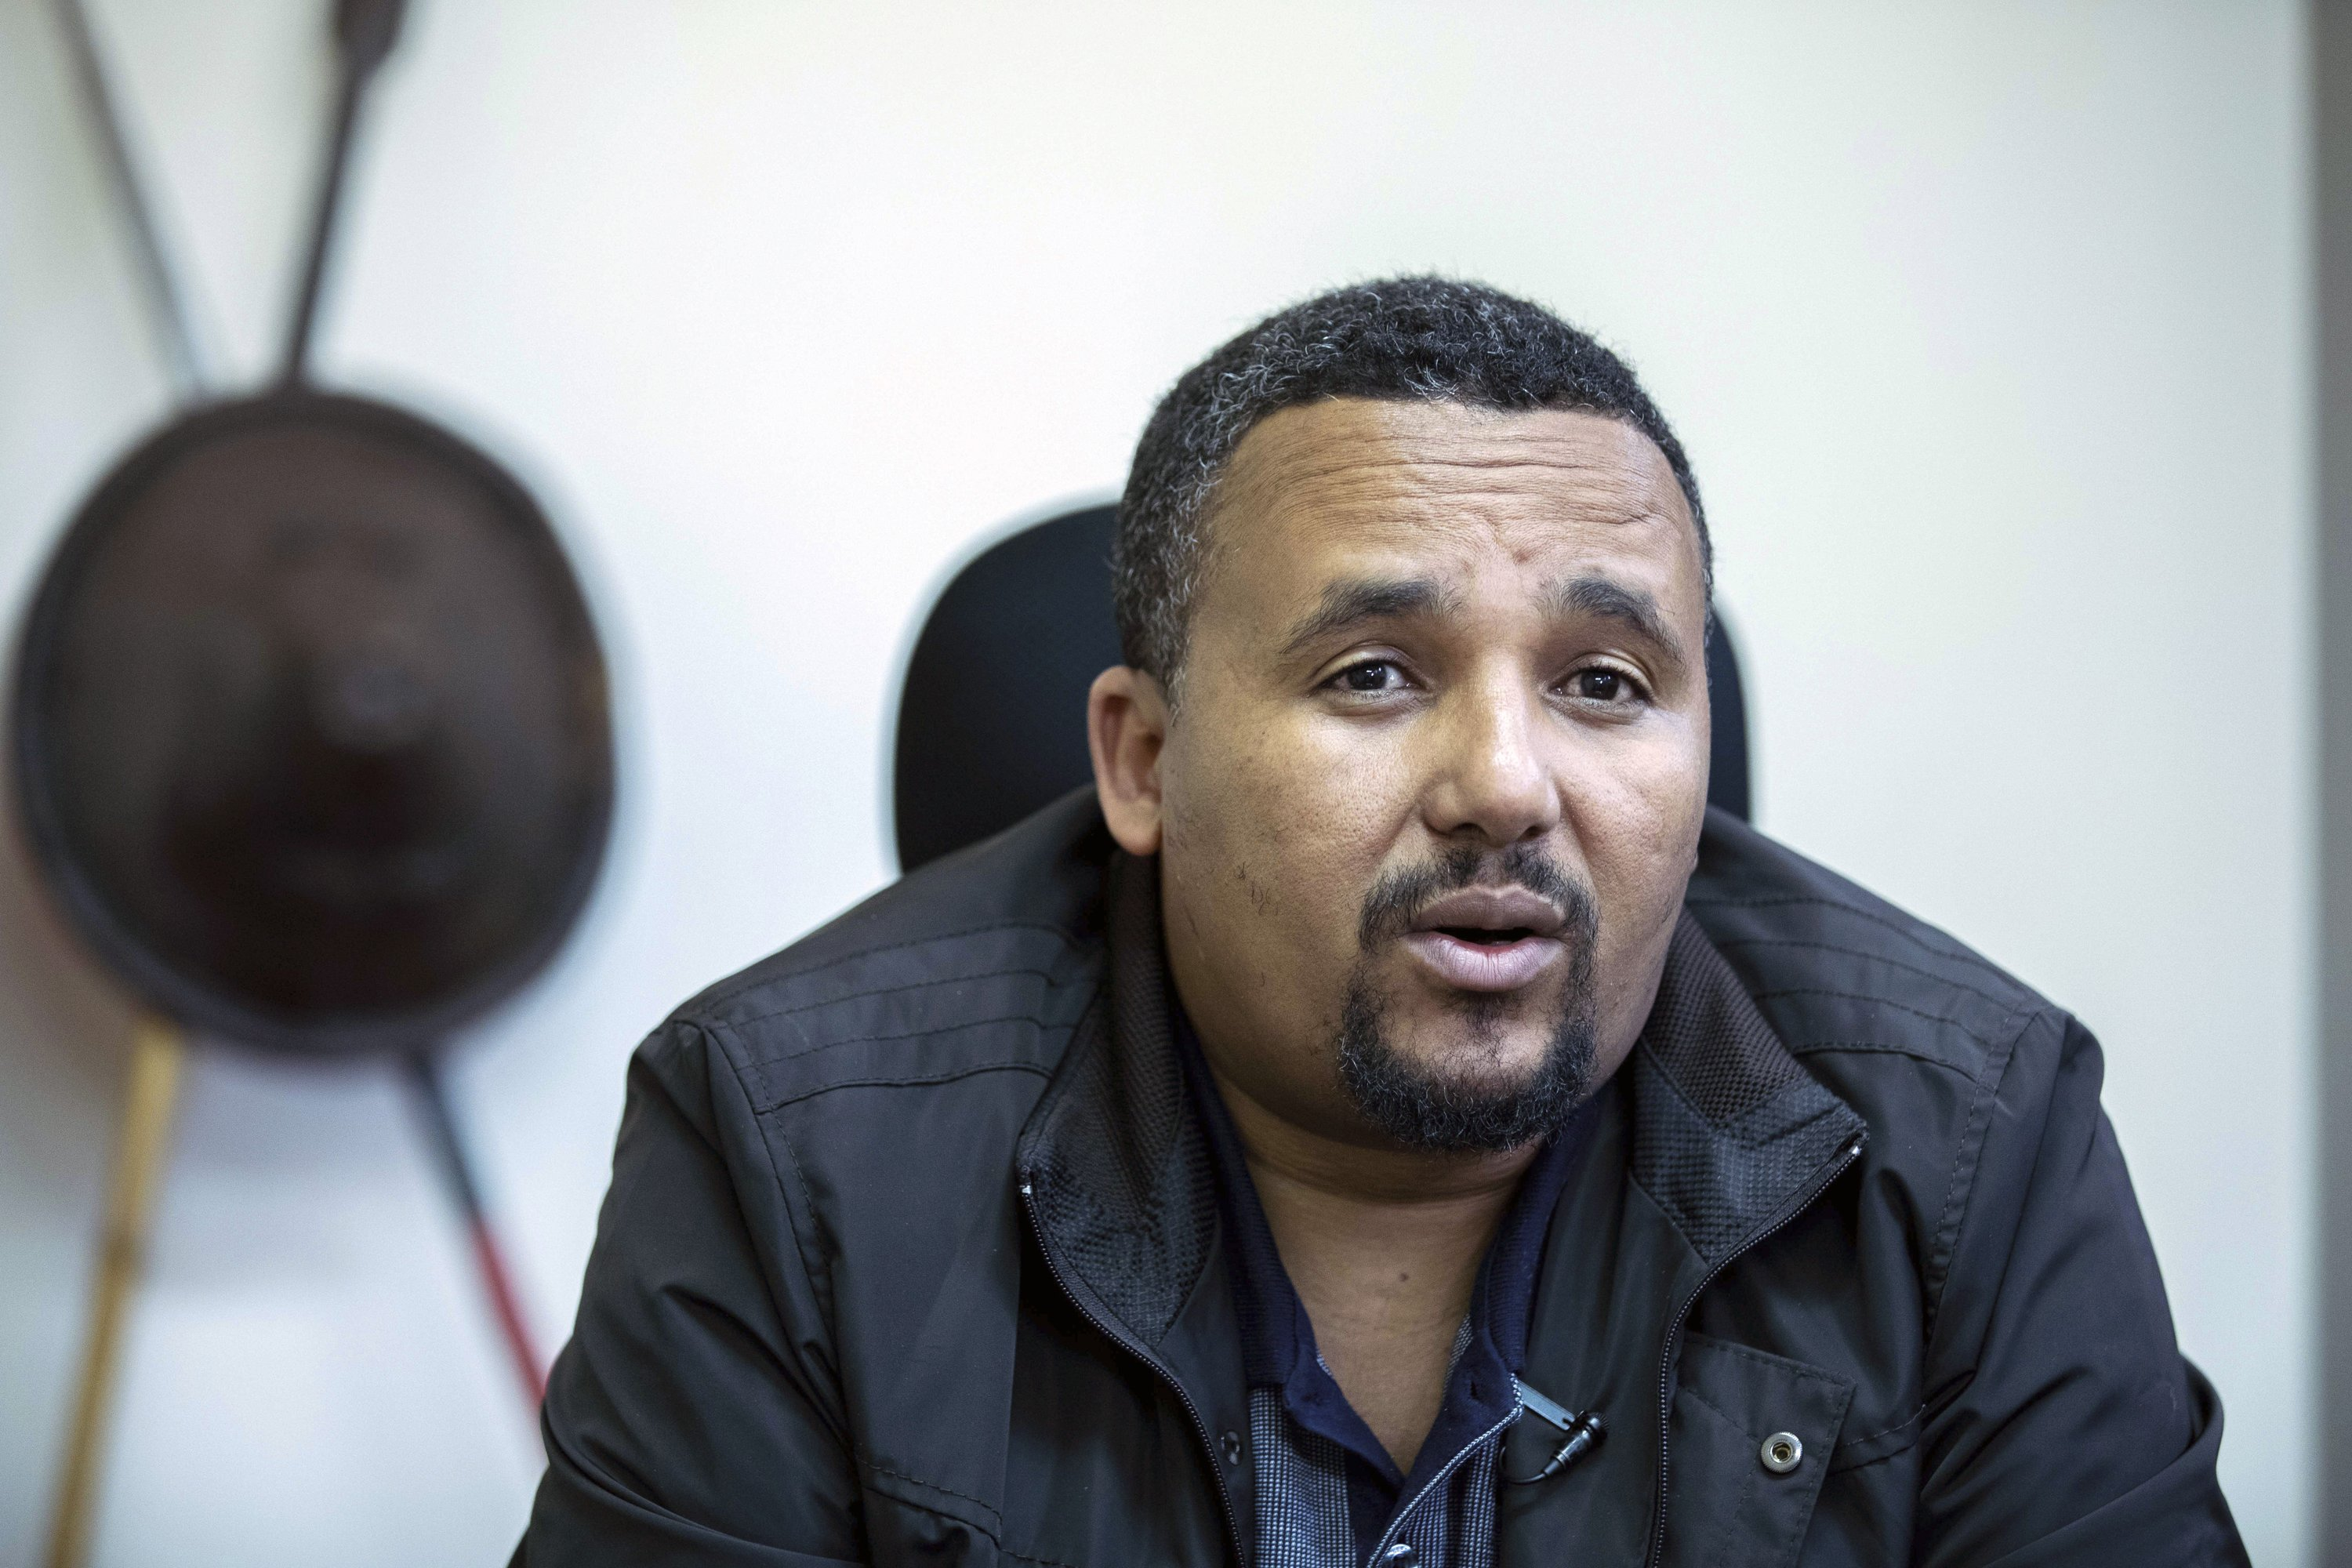 Ethiopia charges prominent opposition figure with terrorism